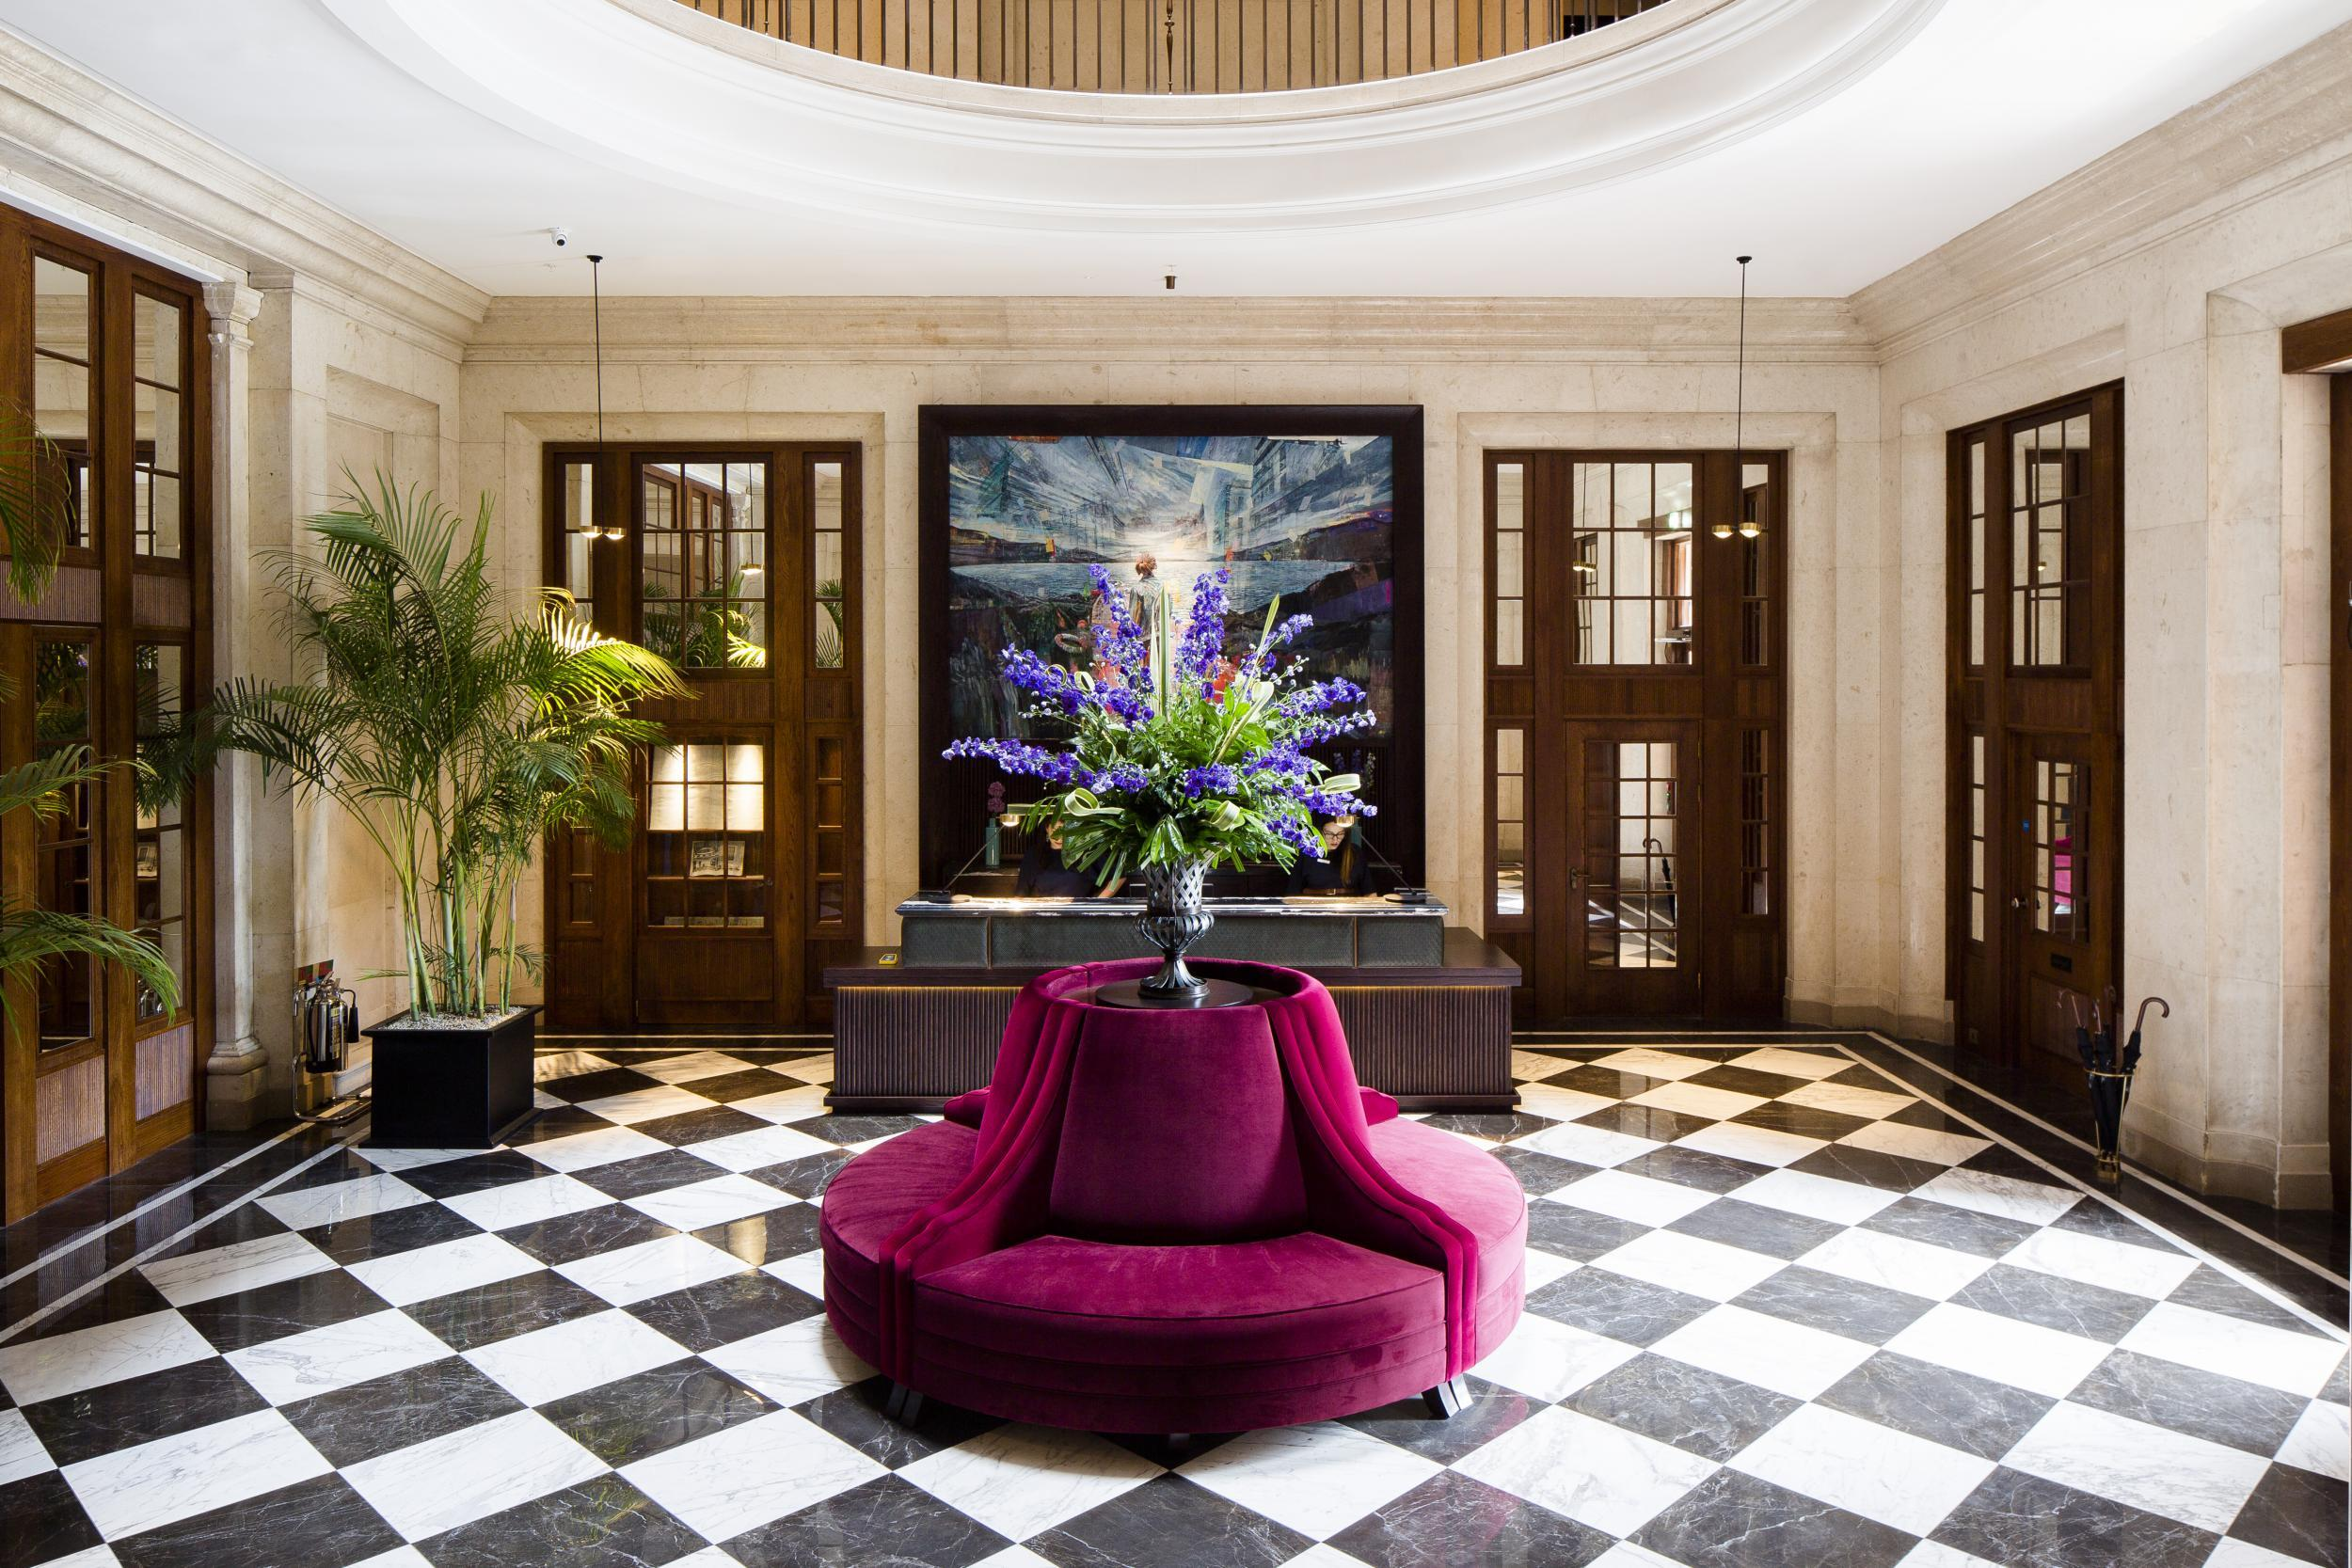 Edinburgh hotels: The best places to stay for location and value of money